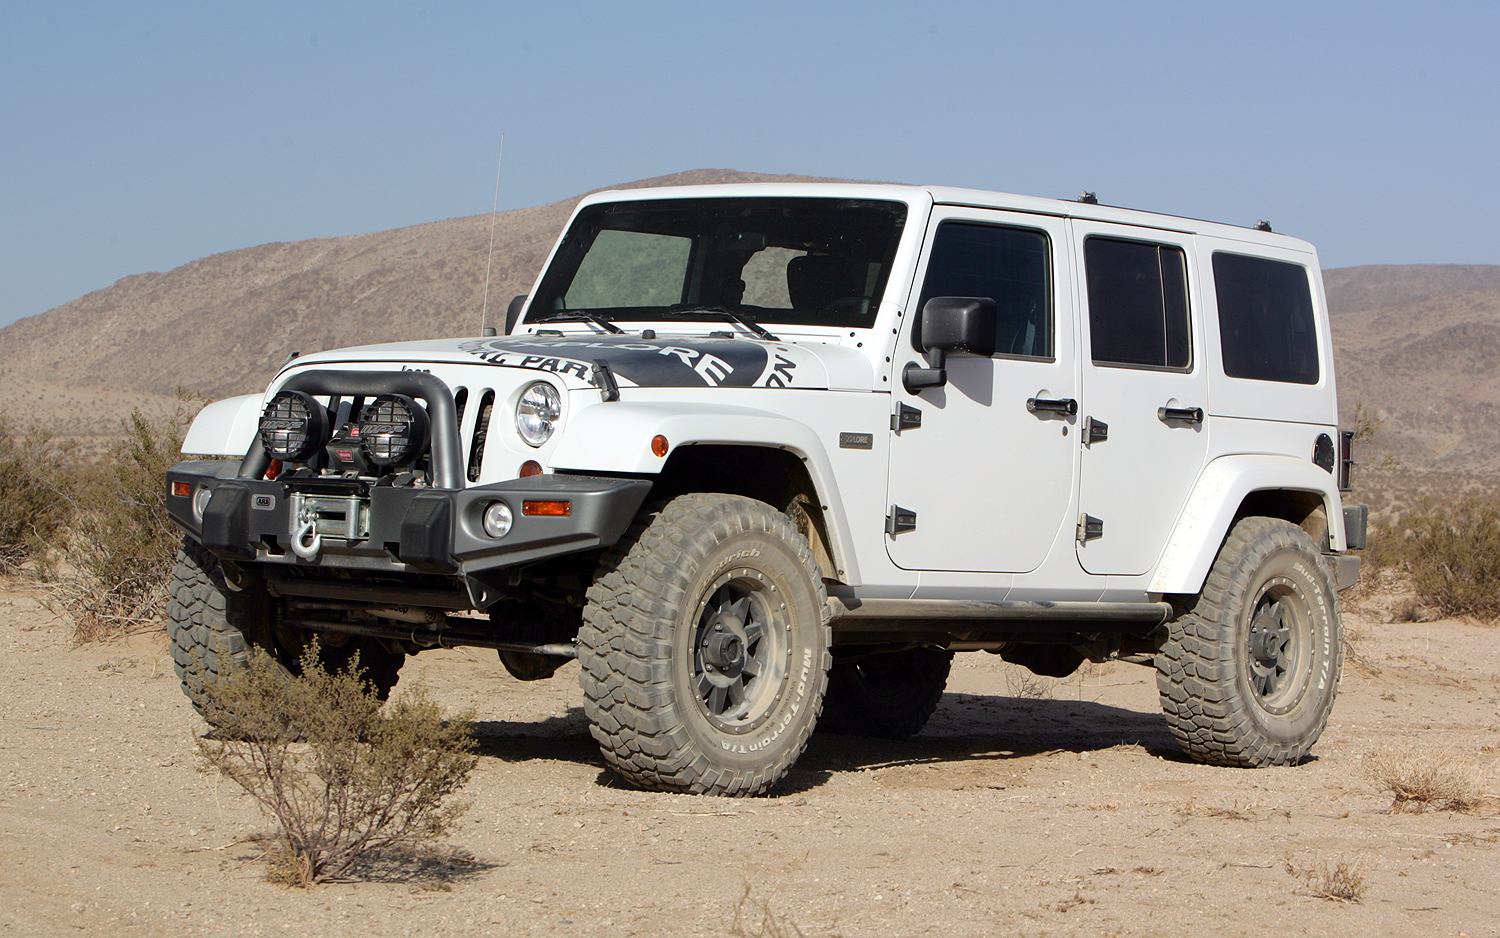 jeep wrangler unlimited rubicon technical details history photos on better parts ltd. Black Bedroom Furniture Sets. Home Design Ideas